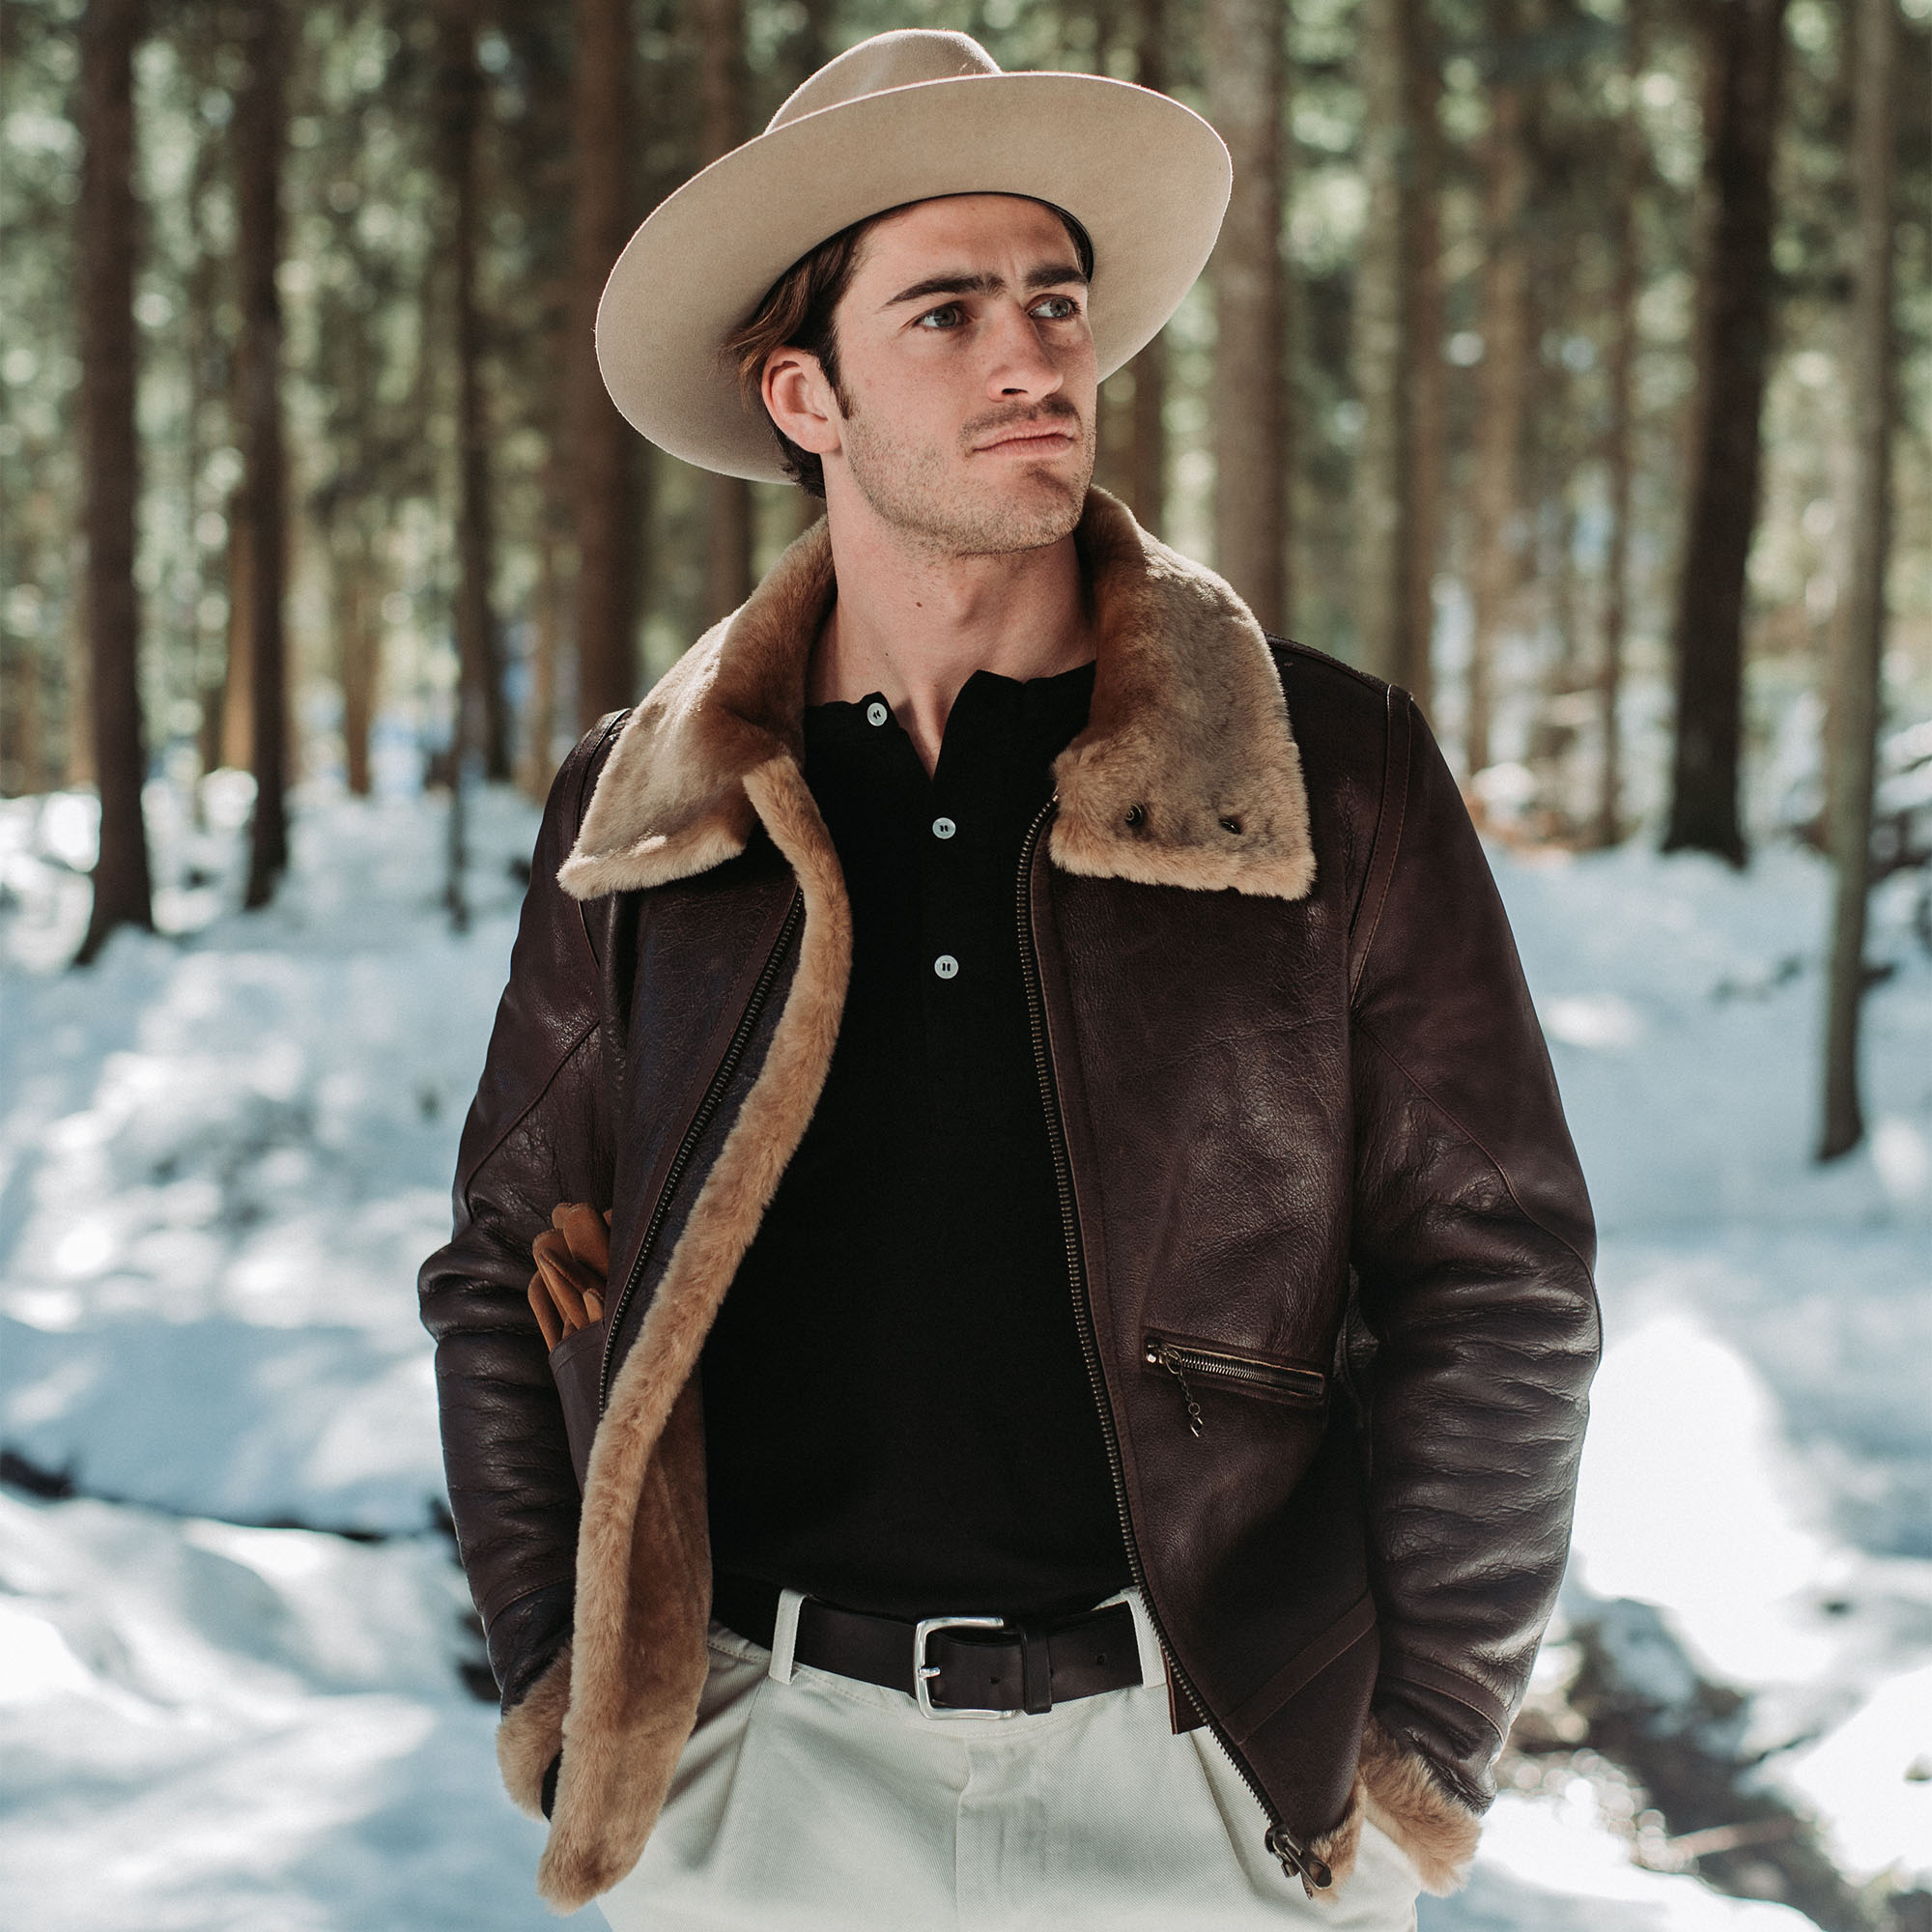 shangri-la-heritage-aviatore-b-3-seal-brown-shearling-sheepskin-jacket-furia-western-hat-explorator-pant-lifestyle-1